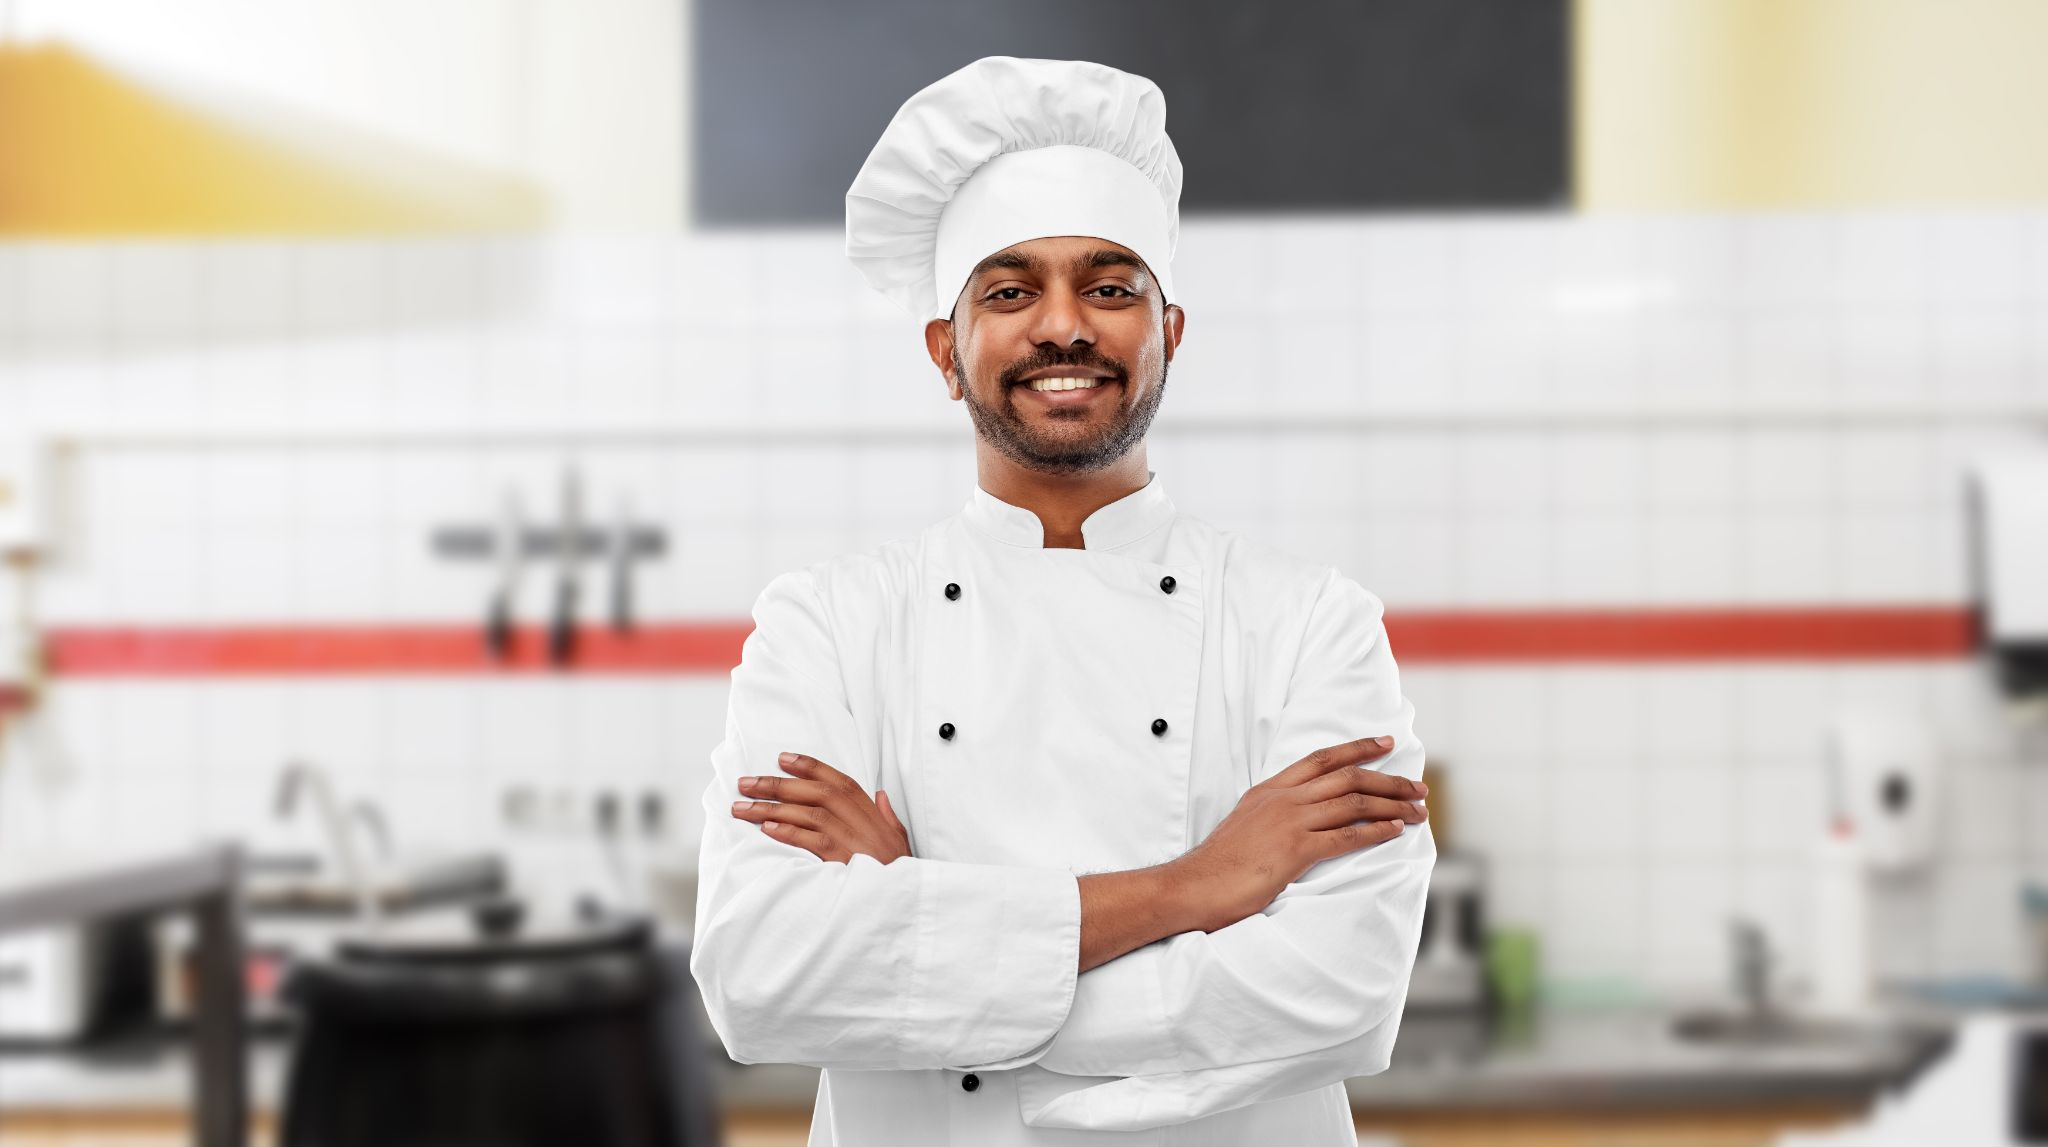 happy male indian chef in toque with crossed arms over restaurant kitchen background